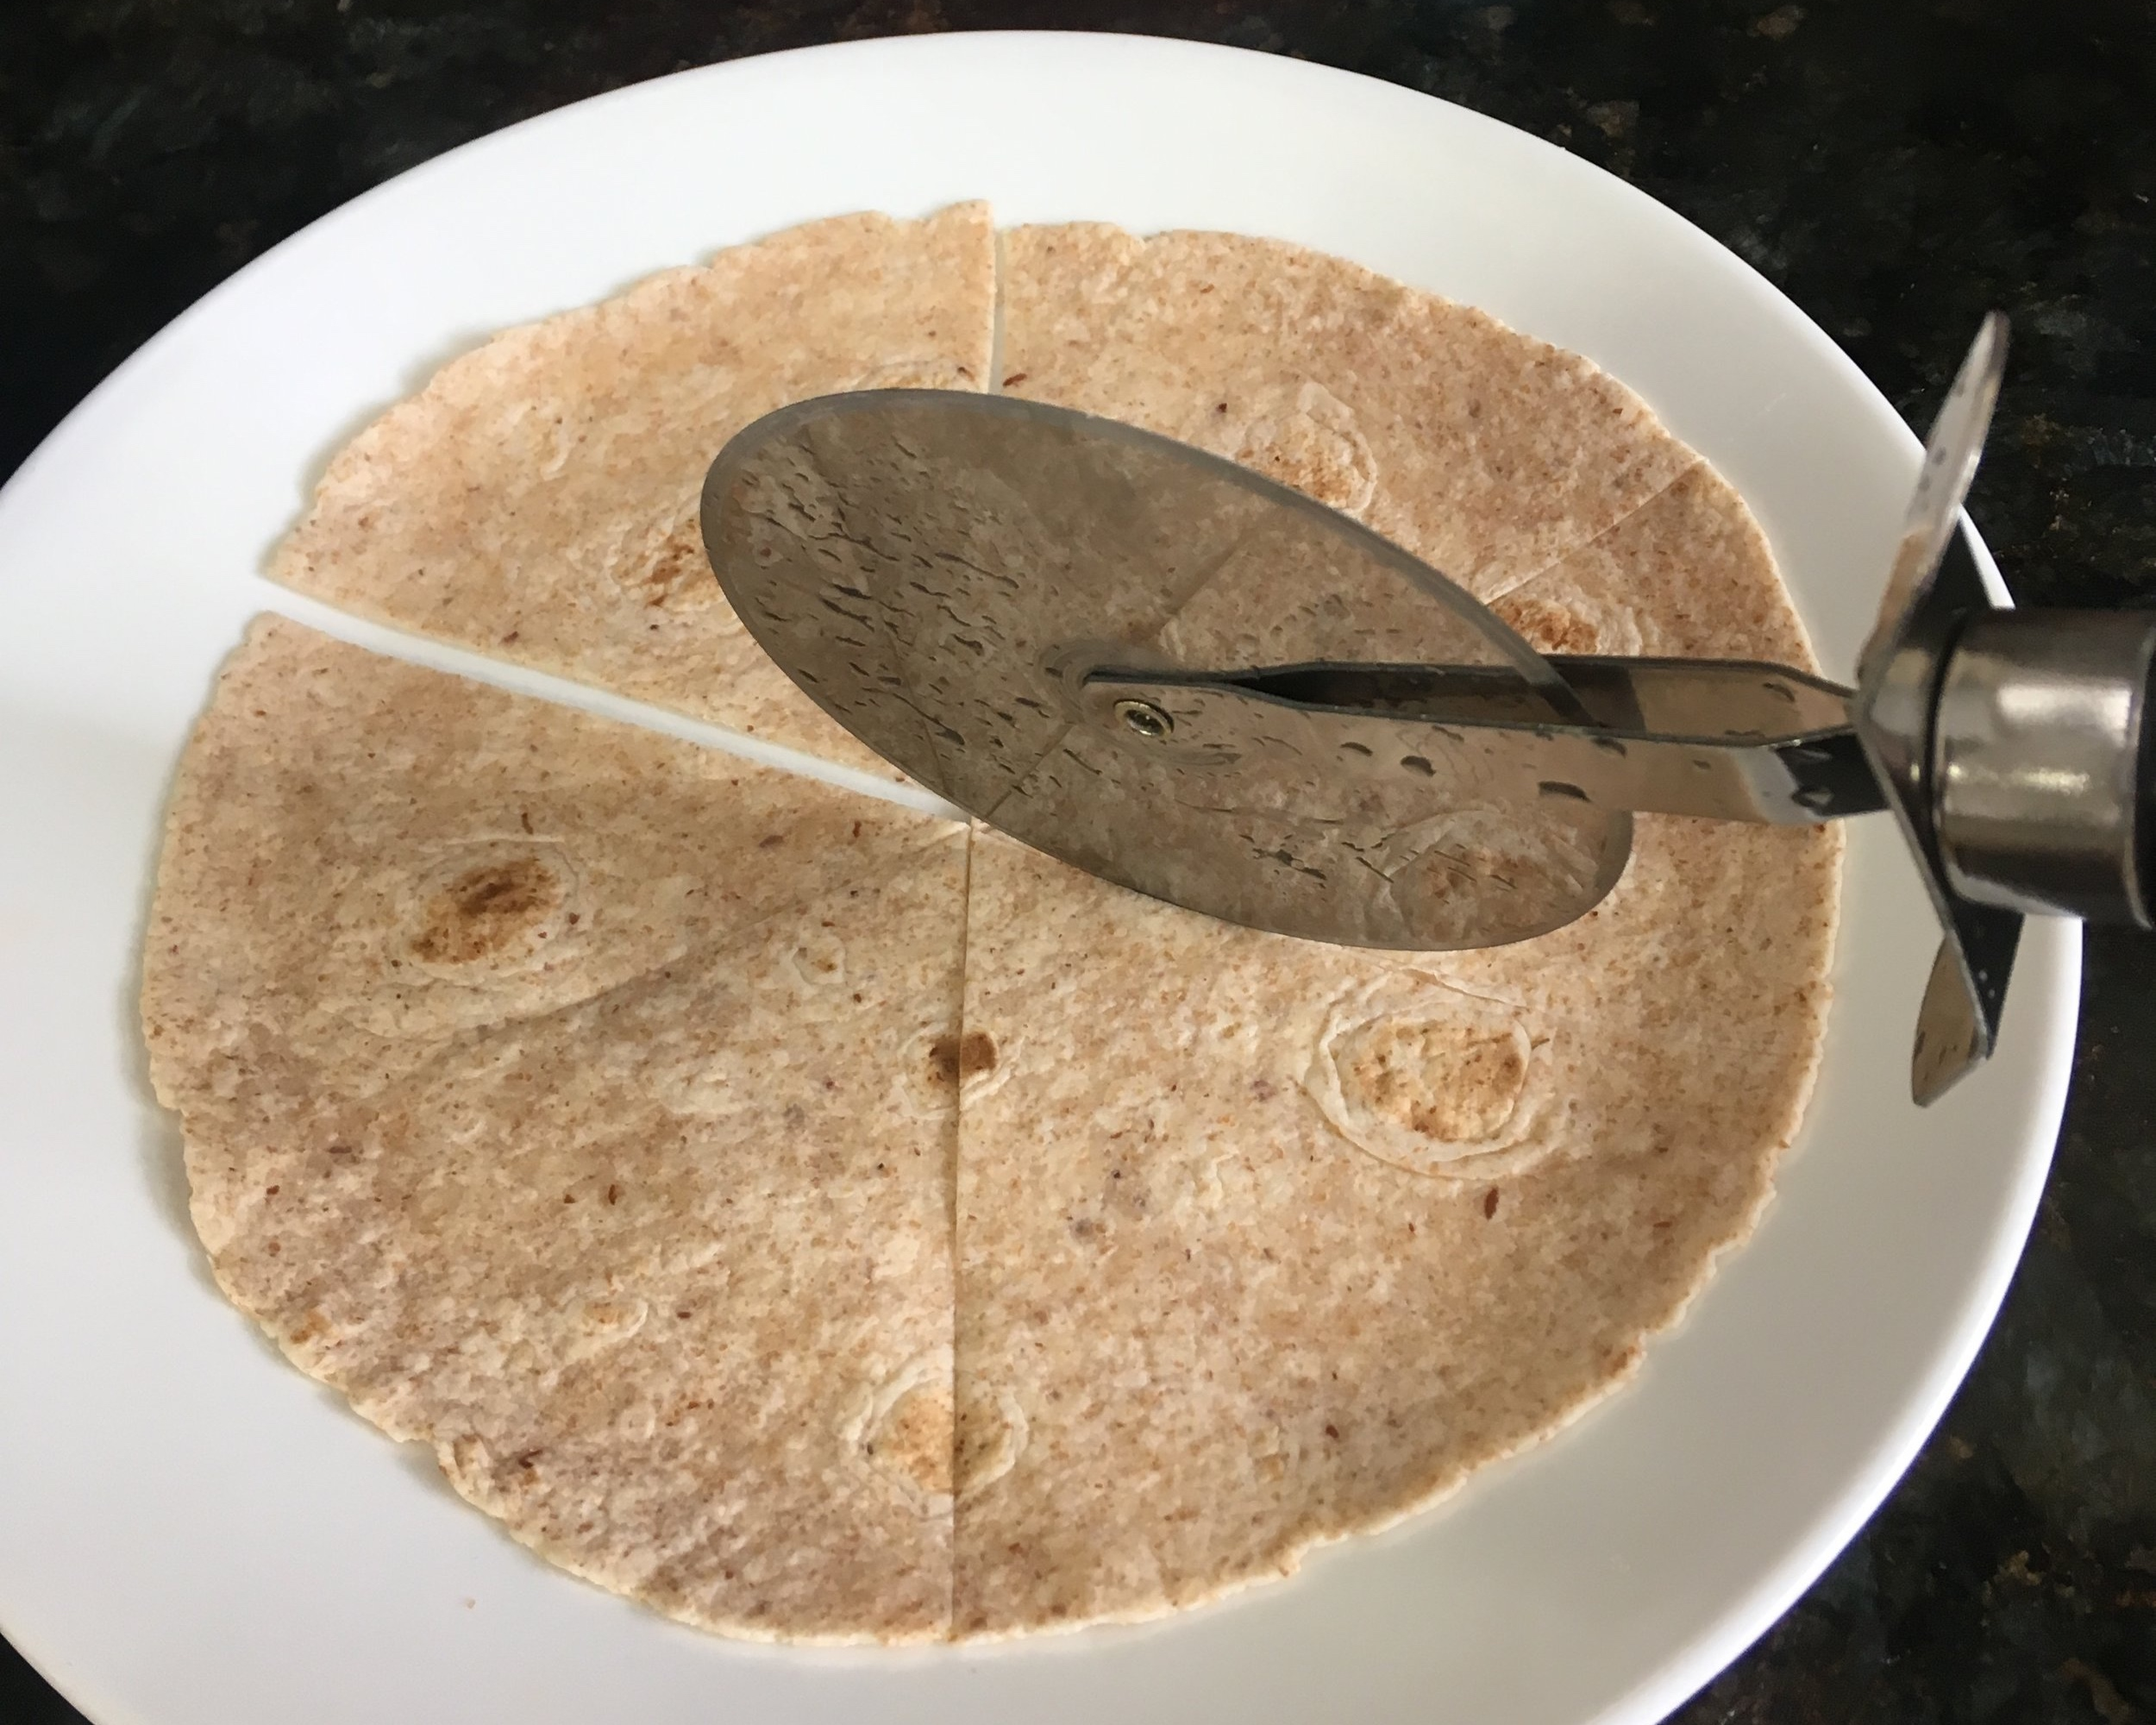 Step 3 - Cut your tortilla(s) into 6 sections.